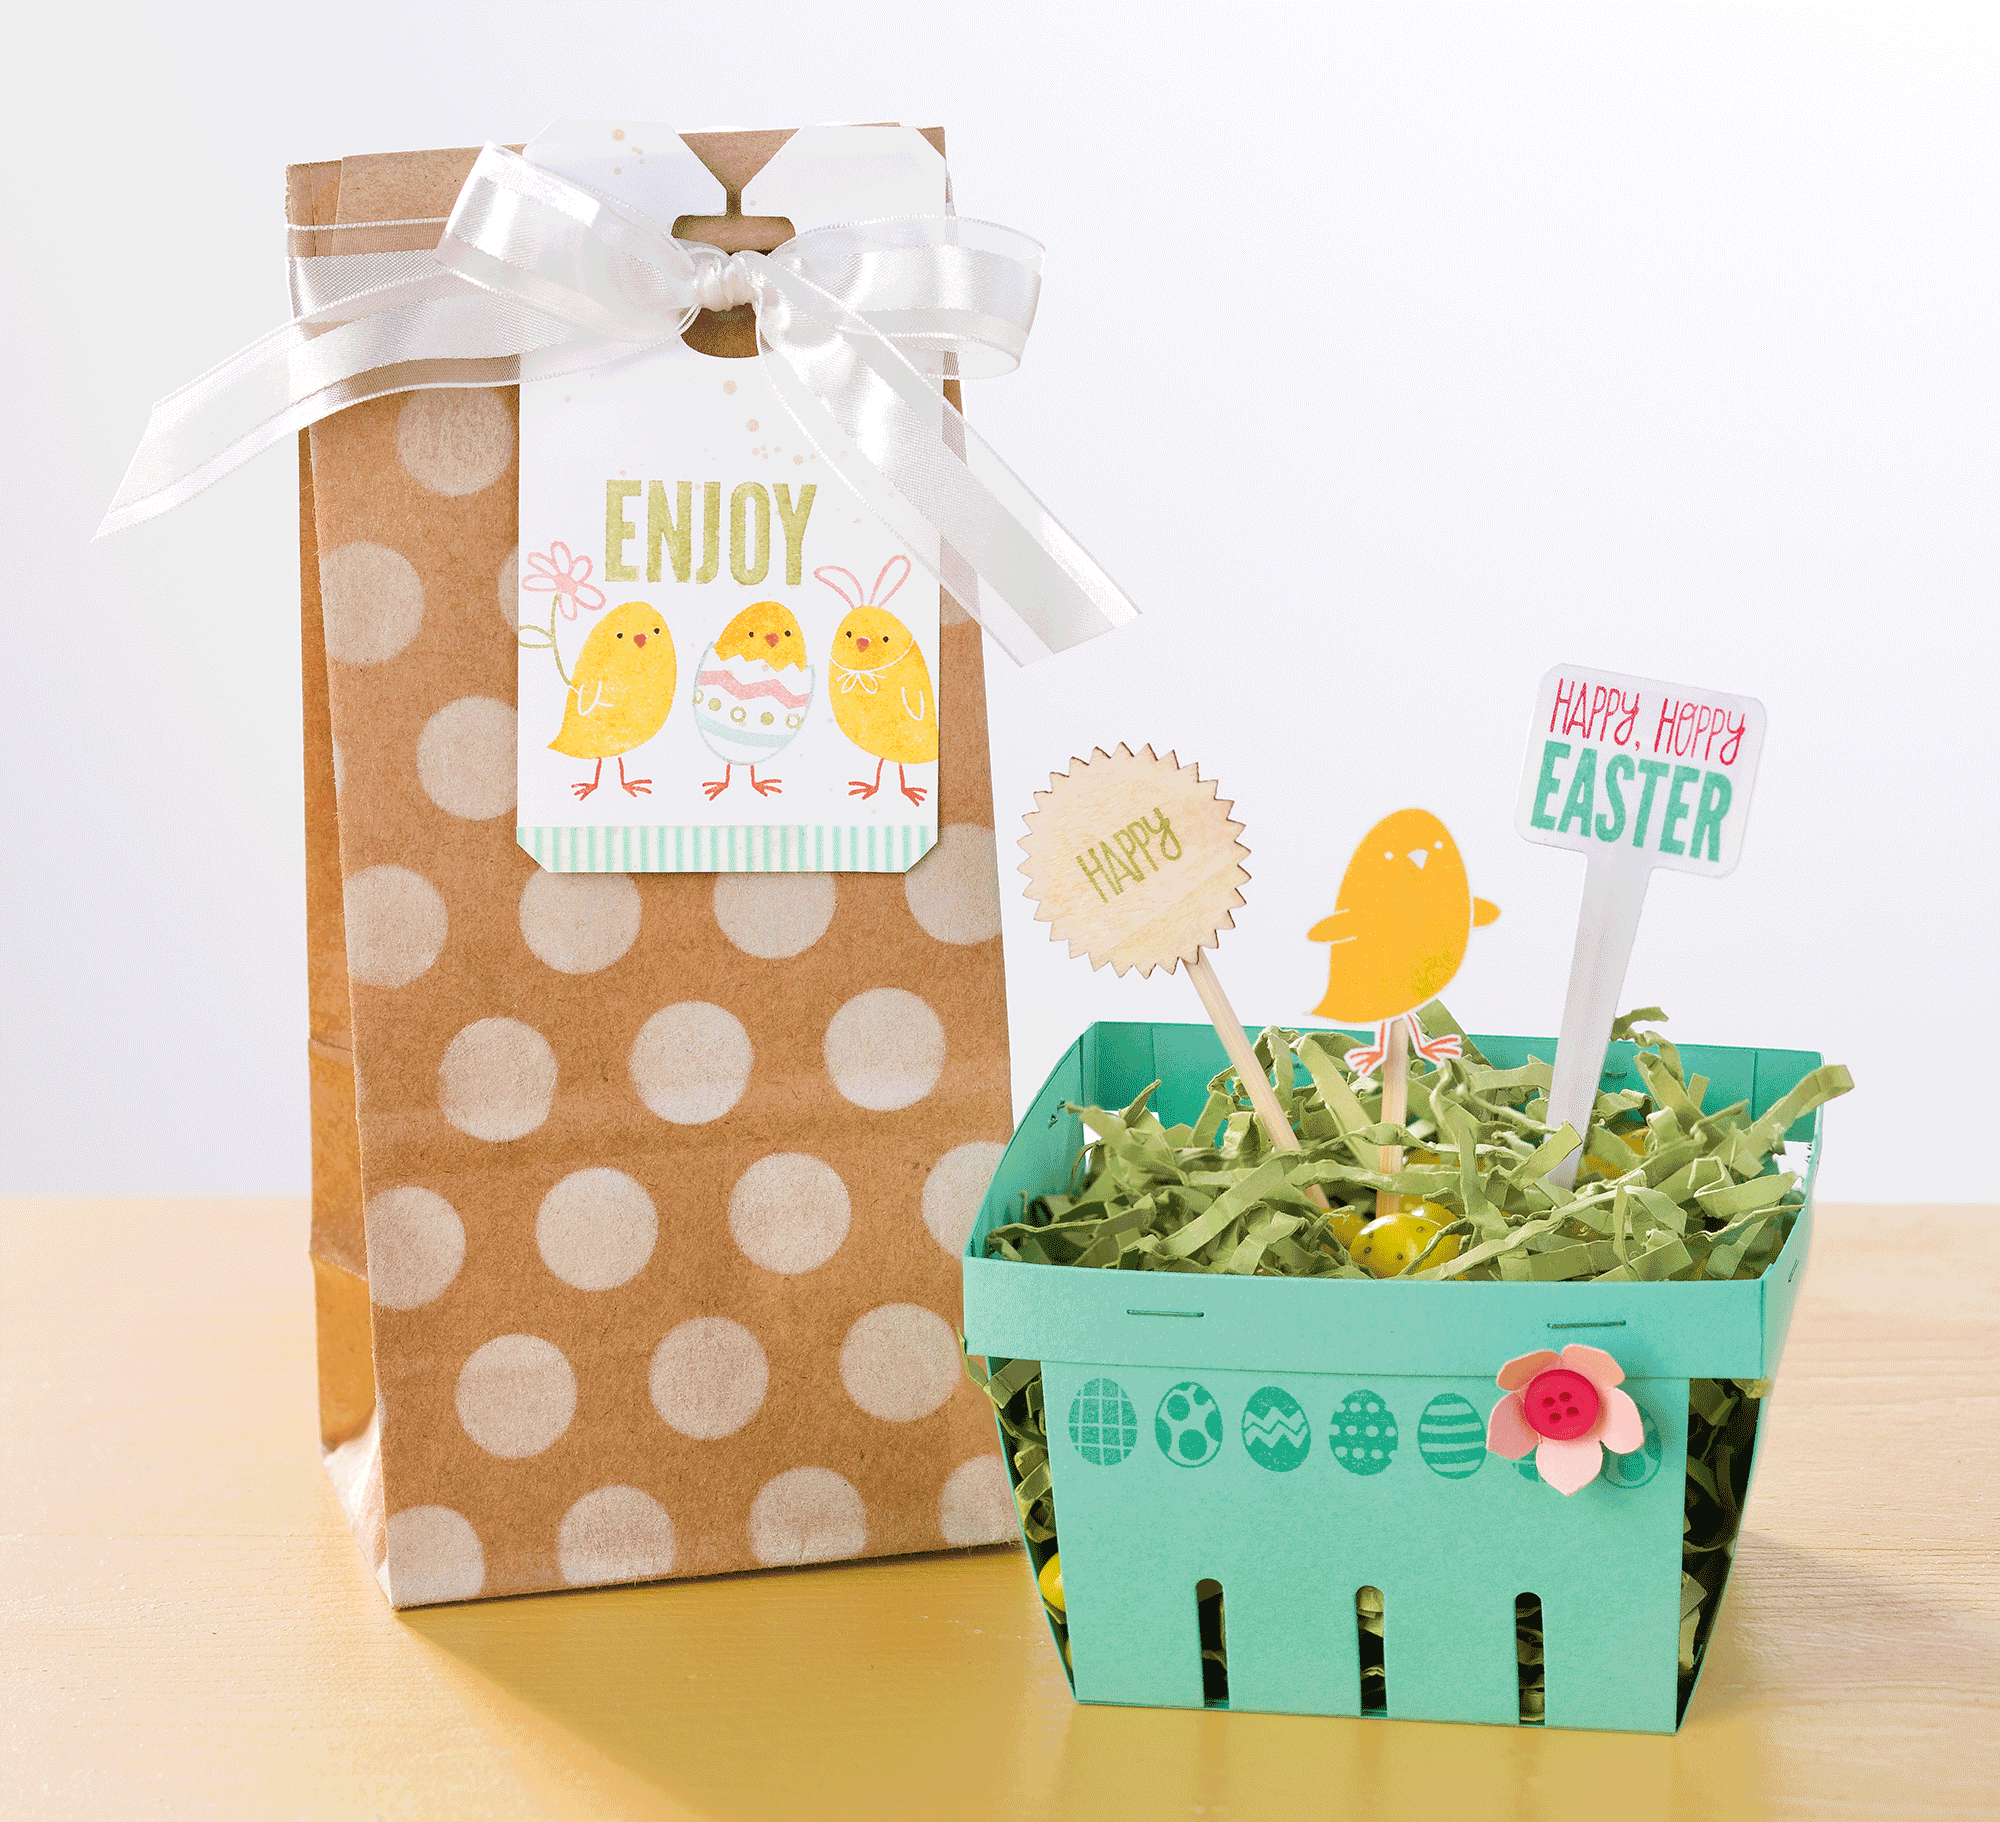 Make your easter gifts even more adorable with the for peeps sake make your easter gifts even more adorable with the for peeps sake stamp set and the berry basket die stampin up negle Image collections